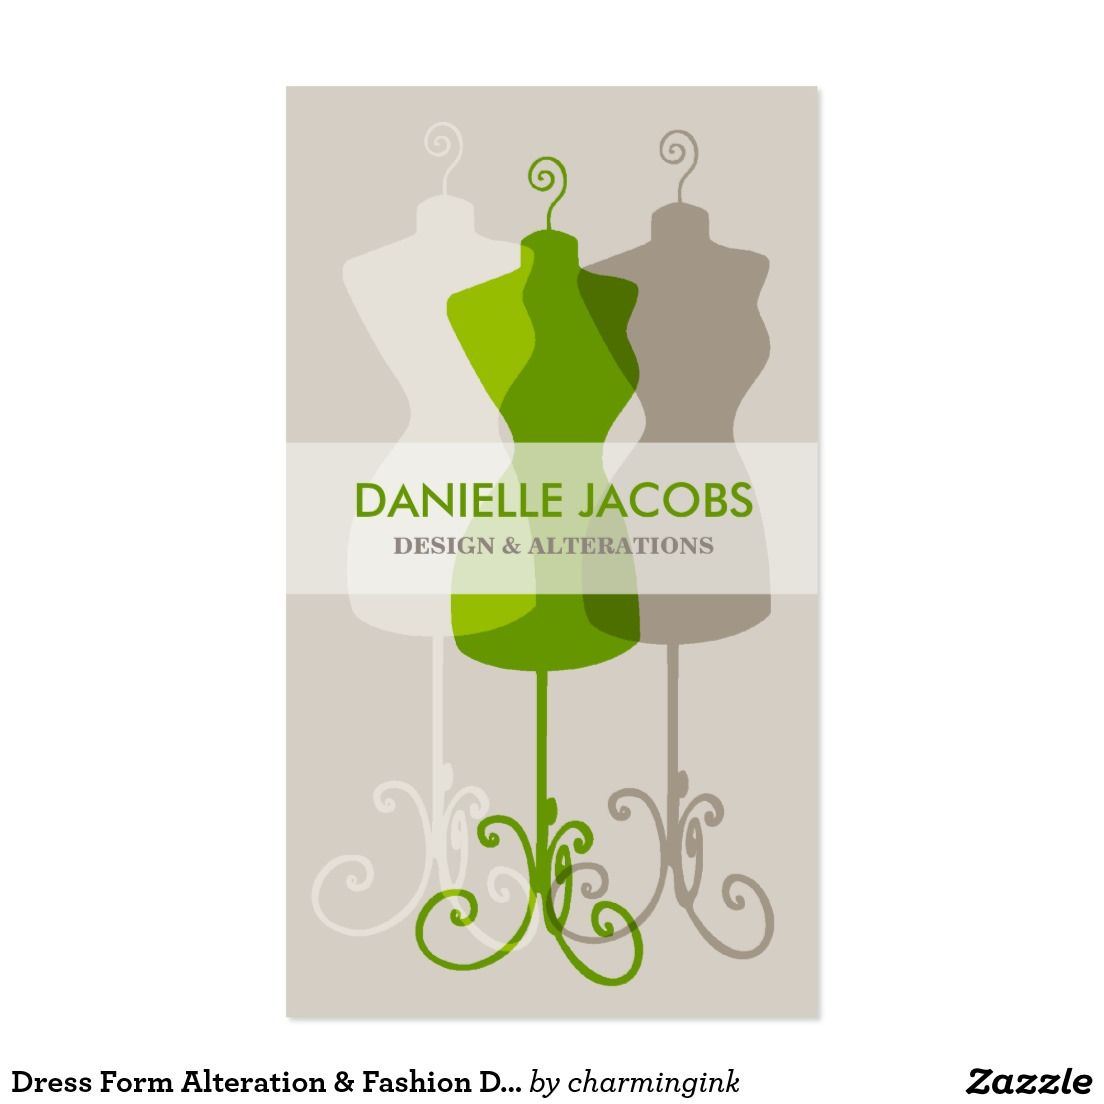 Dress Form Alteration & Fashion Design Card green | Business Cards ...